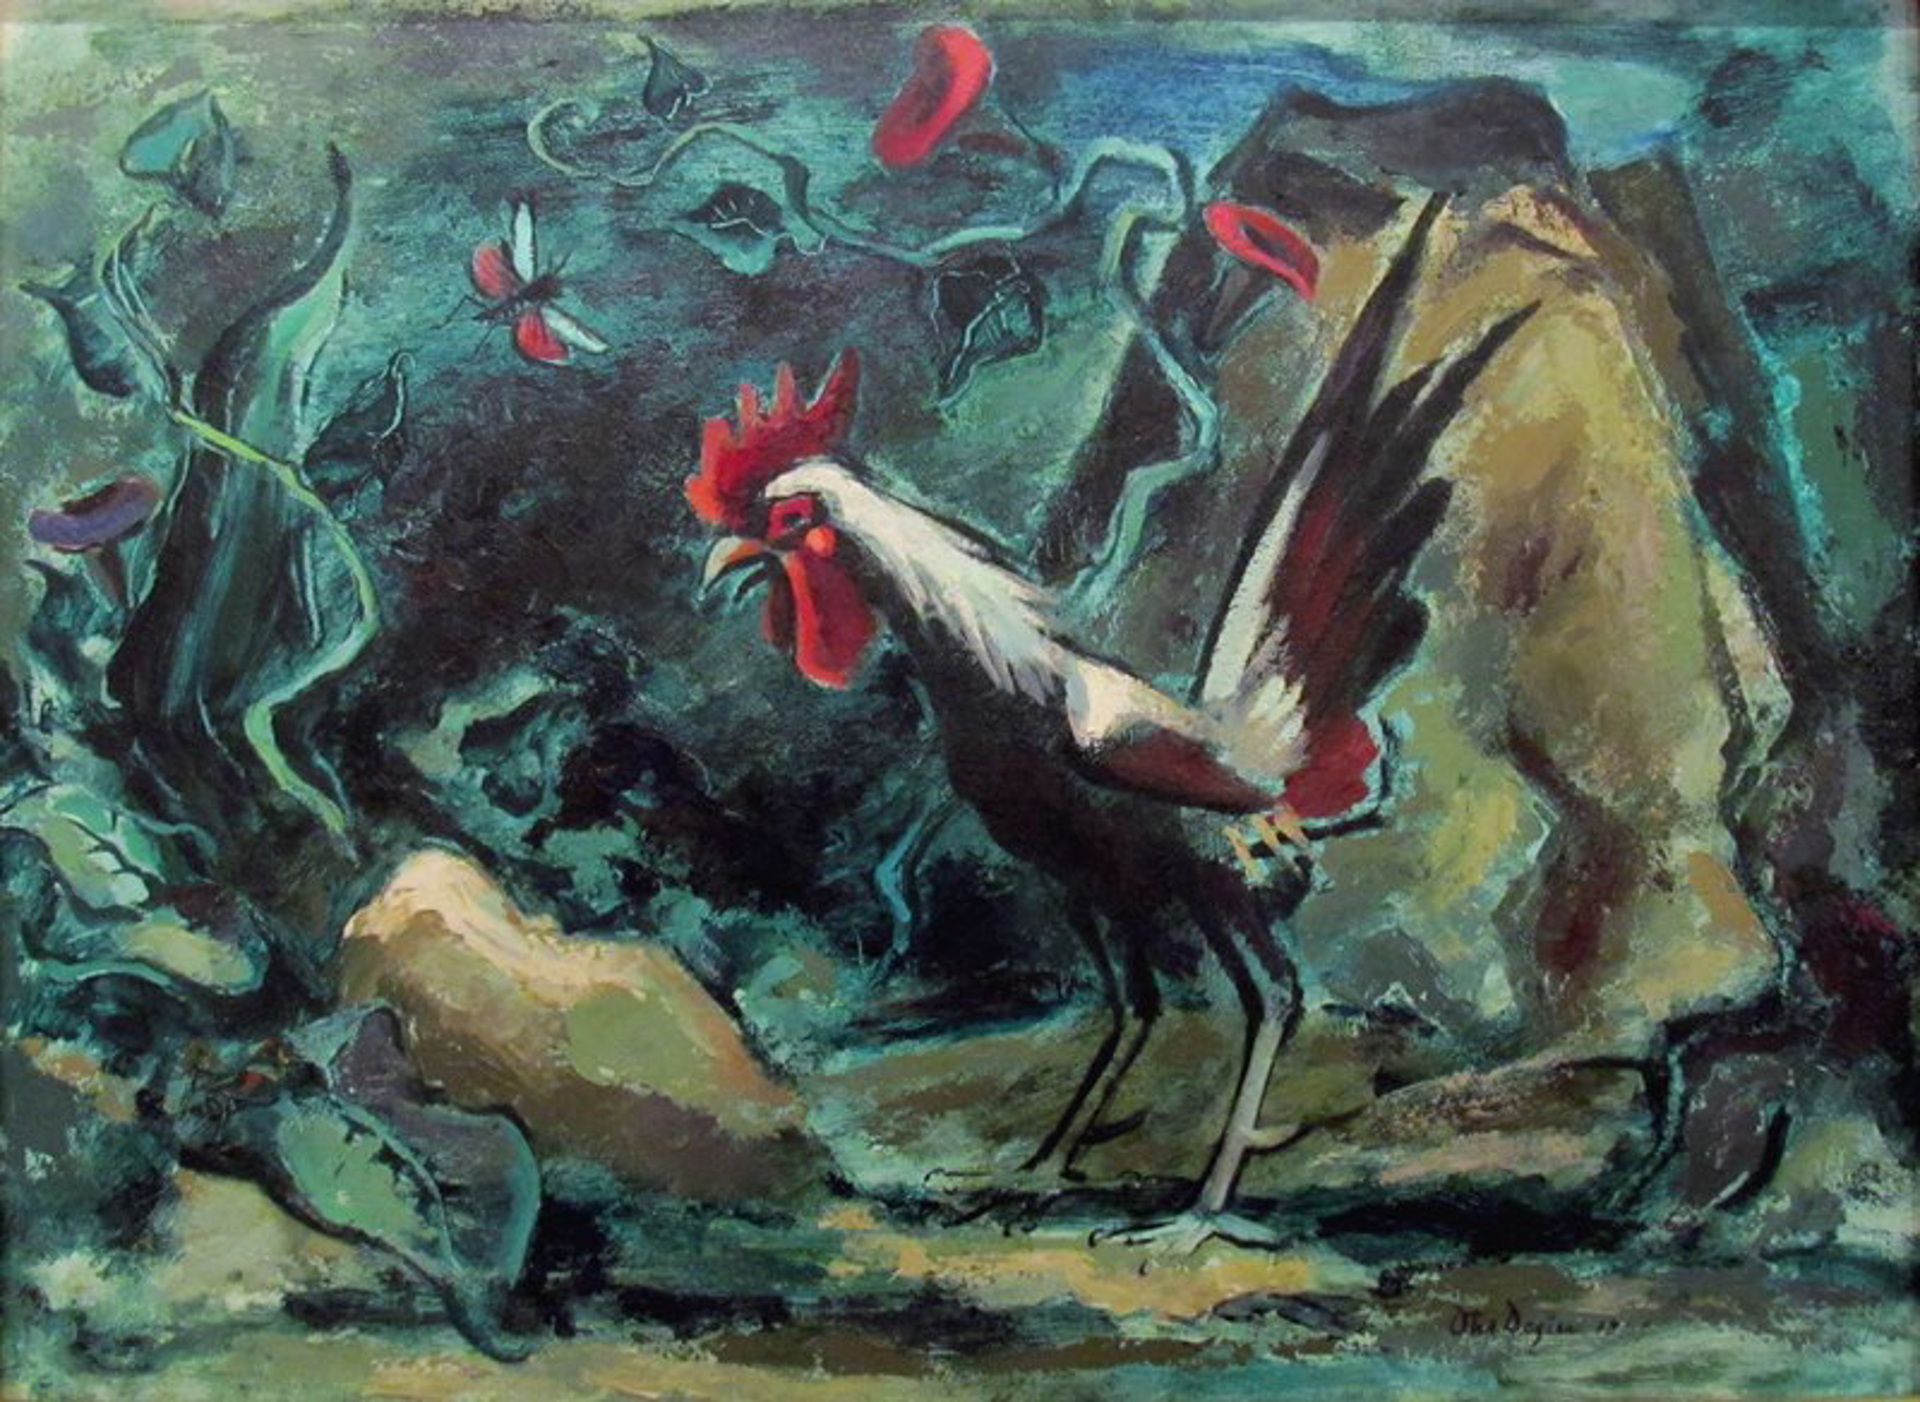 Rooster and Grasshopper by Otis Dozier